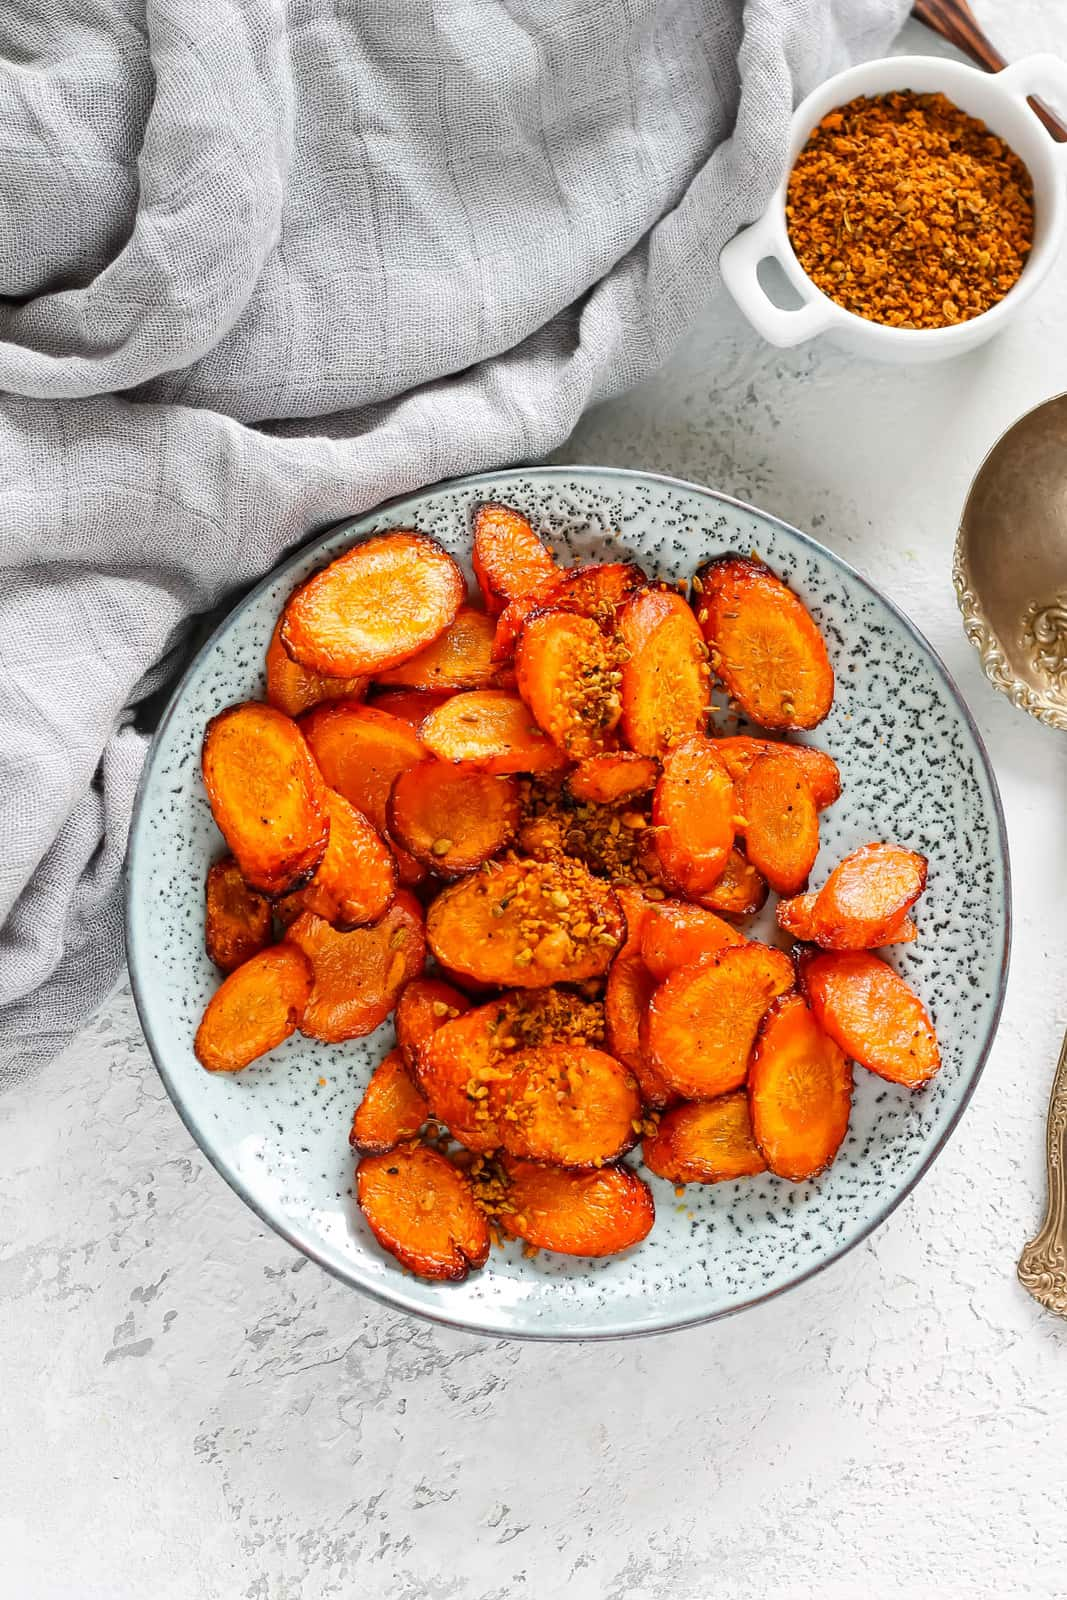 overhead photo of air fryer roasted carrots on a blue plate